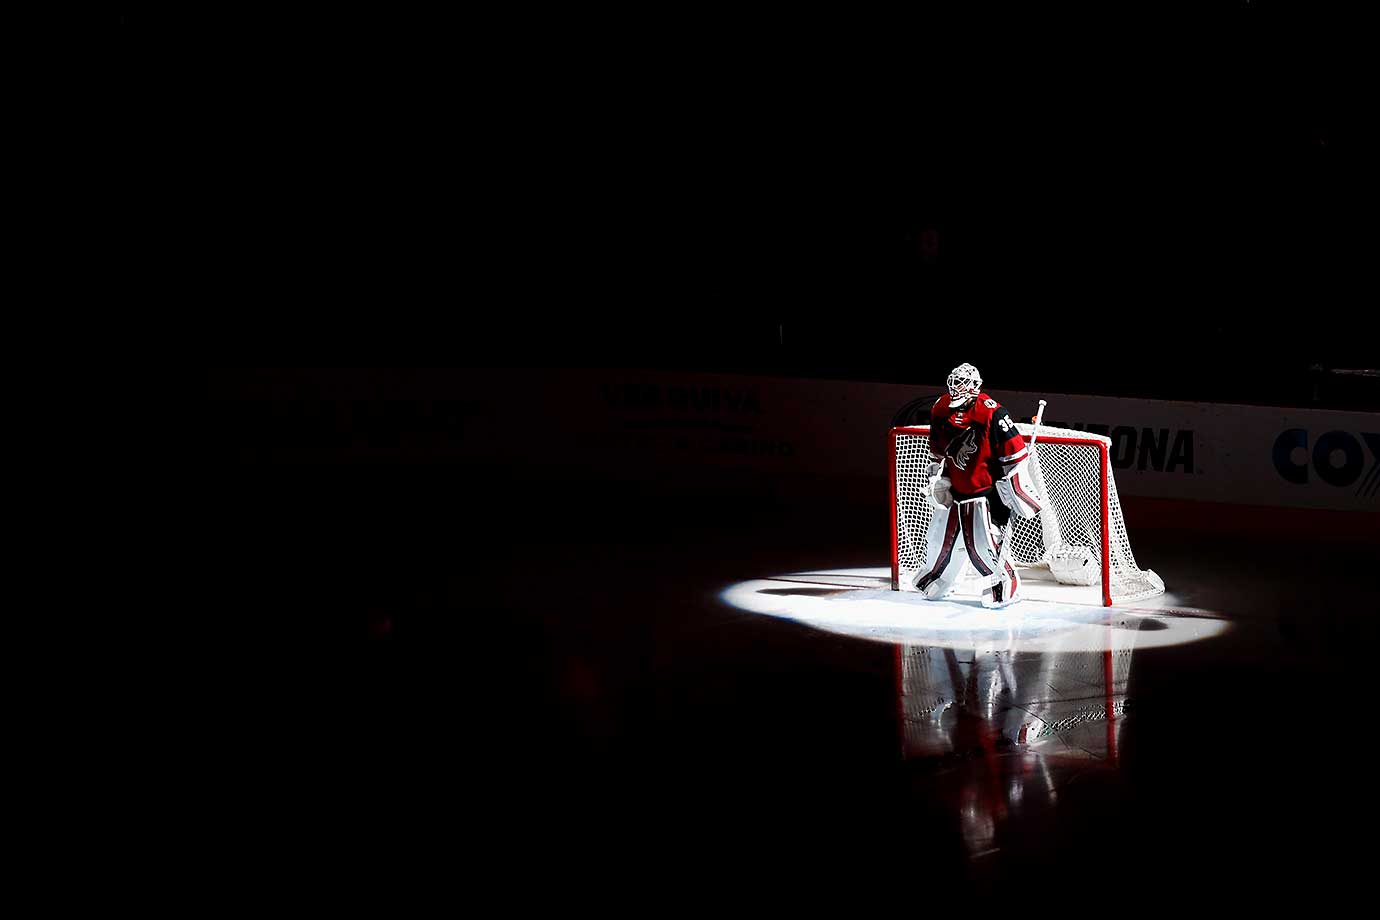 Goaltender Louis Domingue of the Arizona Coyotes is introduced before a game against the Montreal Canadiens.